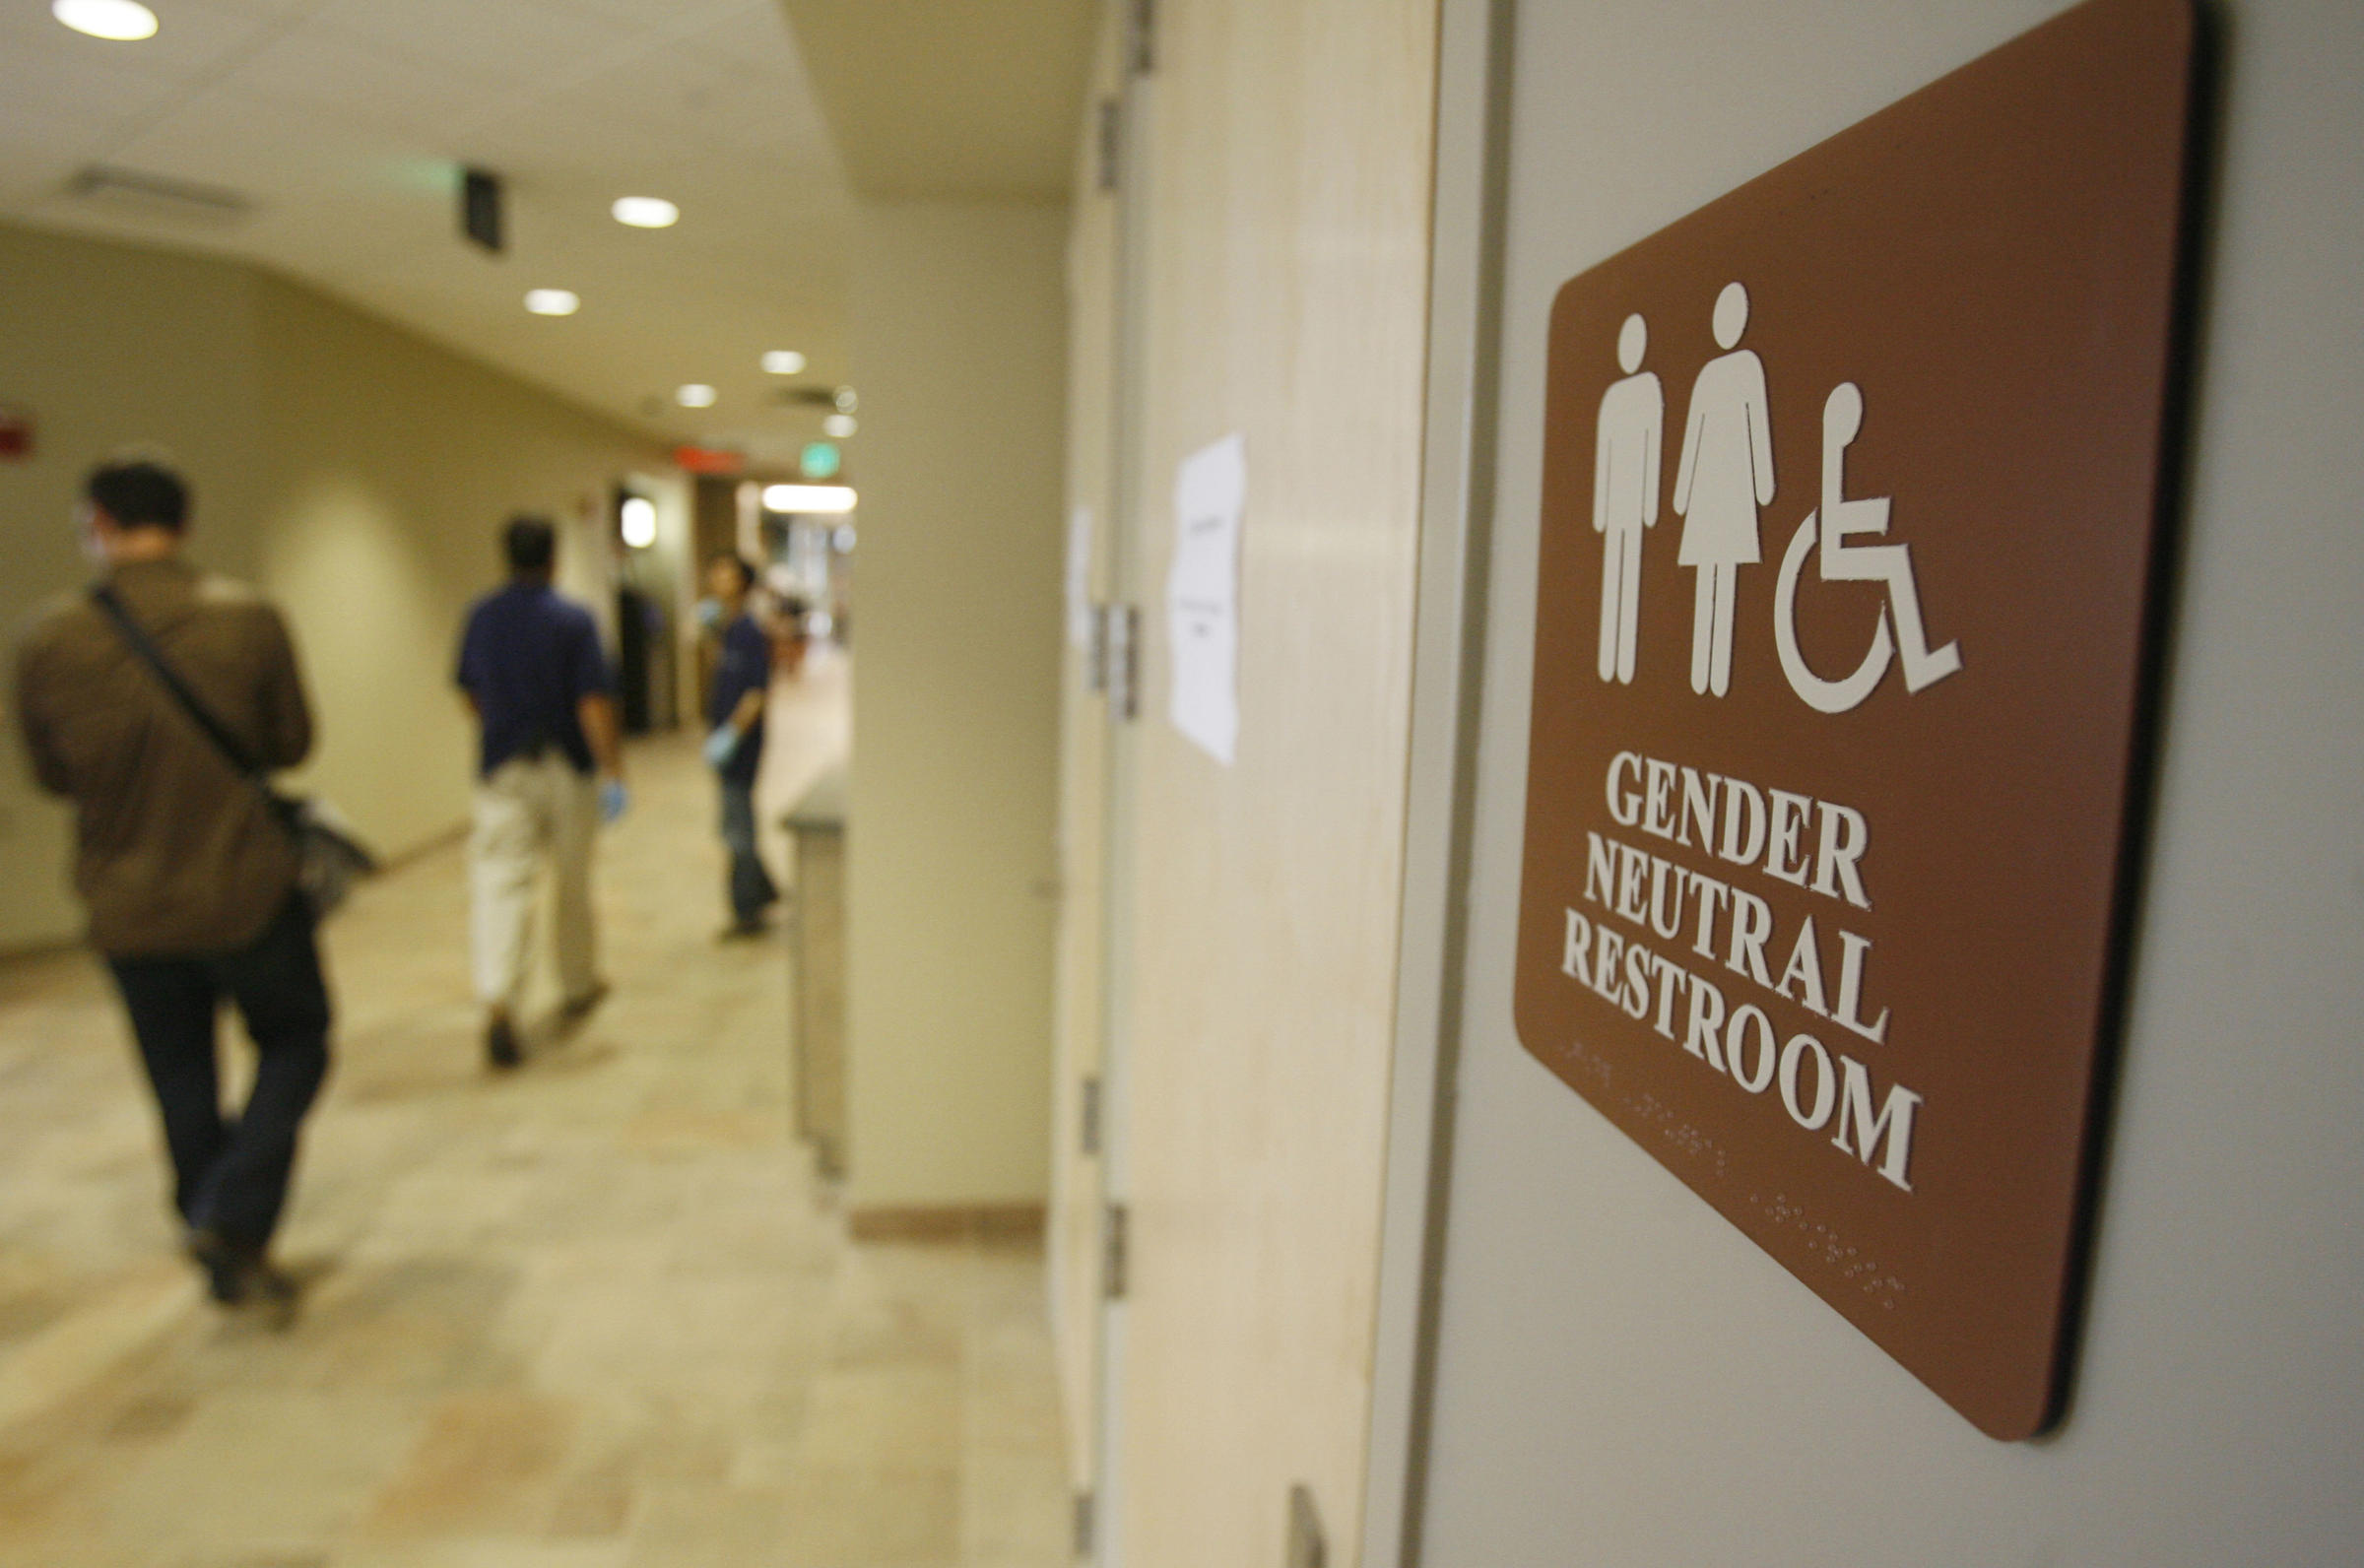 Pine-Richland School District Asks Judge To Dismiss Bathroom Policy